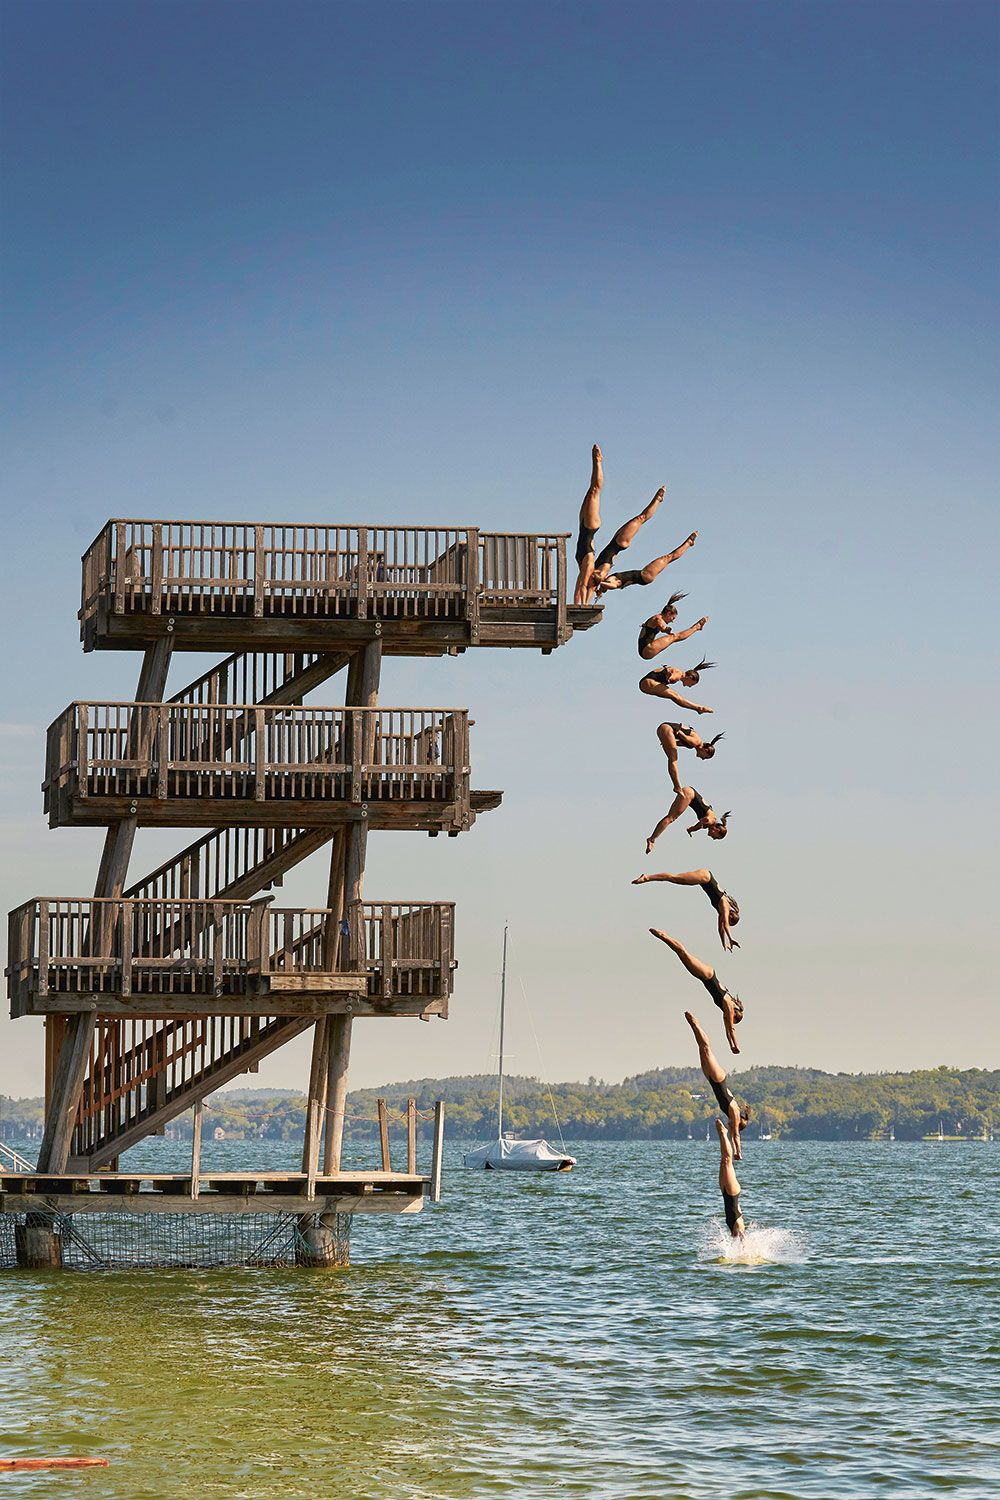 Photomontage of a jump sequence by Iris Schmidbauer at Ammersee